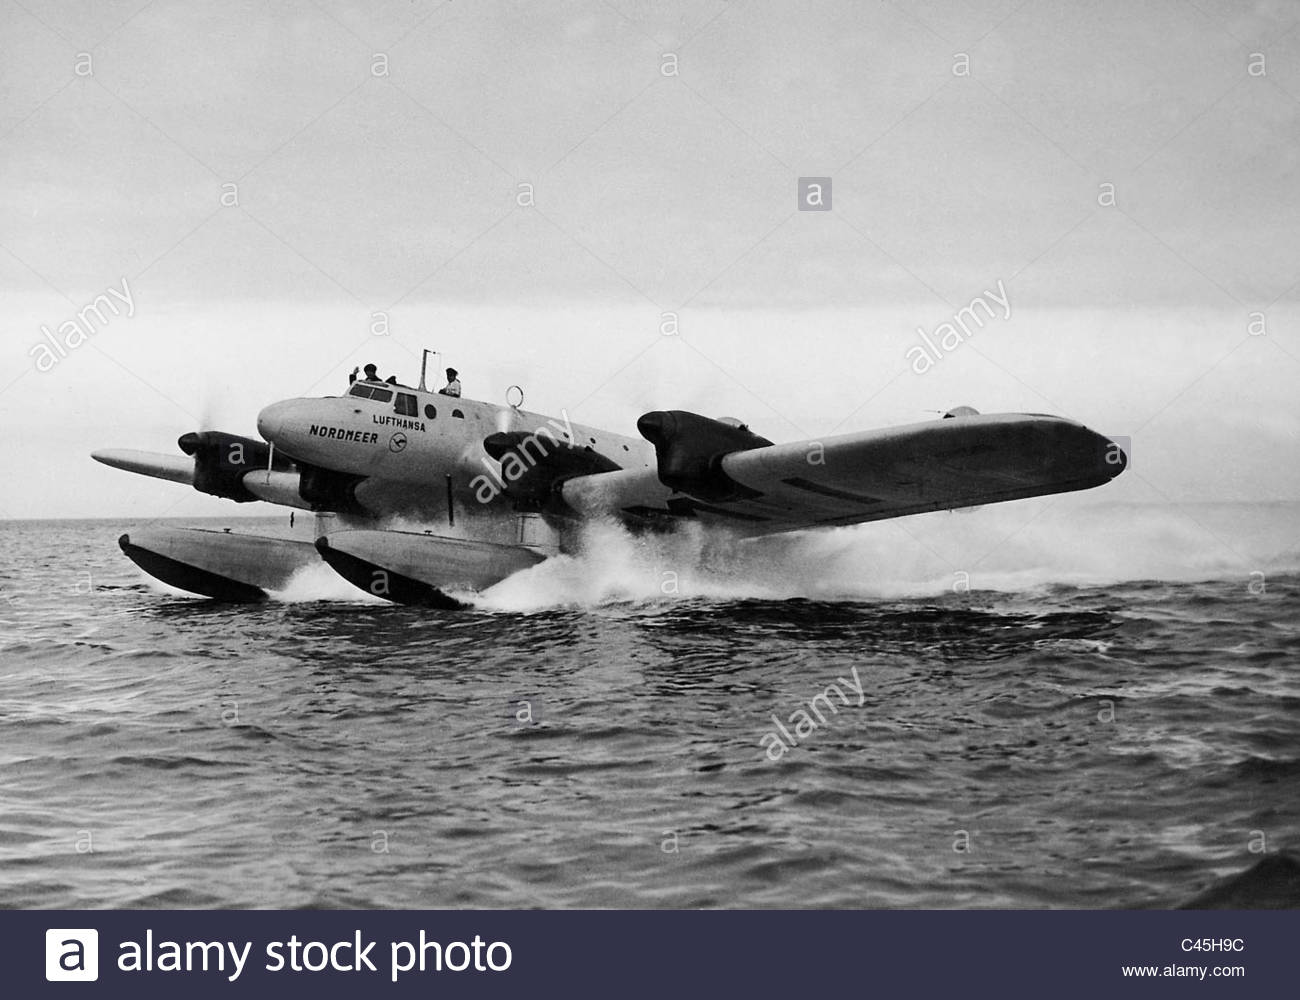 flying-boat-ha-139-north-sea-of-blohm-und-voss-aircraft-gmbh-on-the-C45H9C.jpg